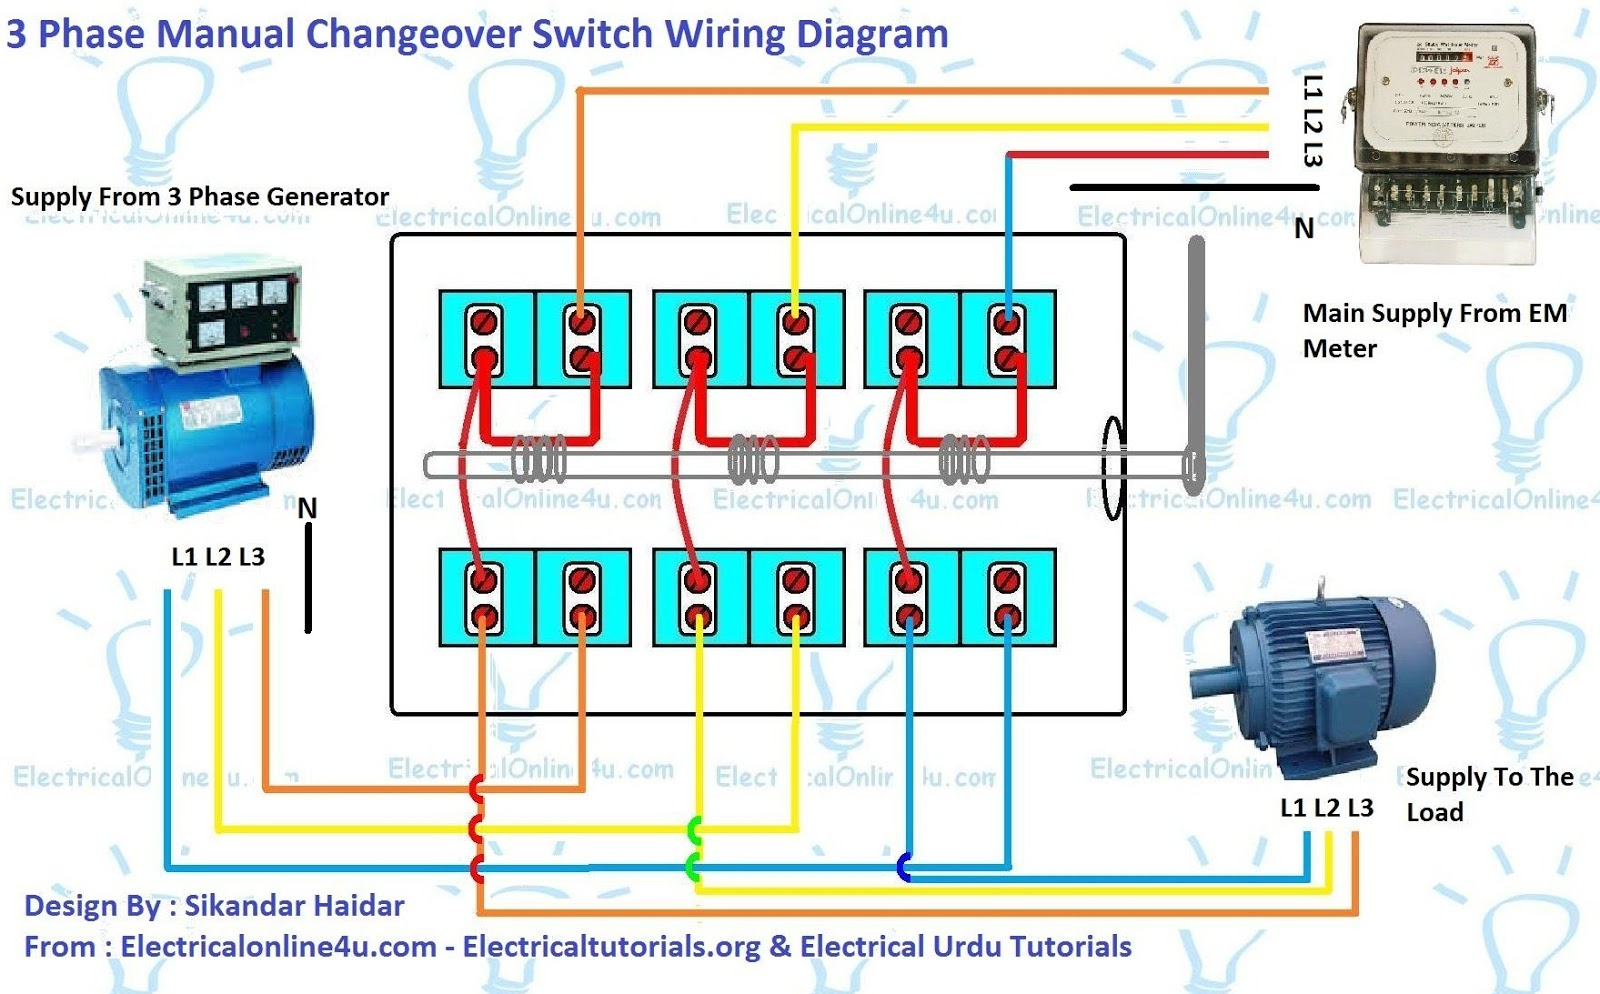 3%2Bphase%2Bmanual%2Bchangeover%2Bswitch%2Bwiring%2Bdiagram 3 phase manual changeover switch wiring diagram for generator 3 phase generator wiring diagram at soozxer.org